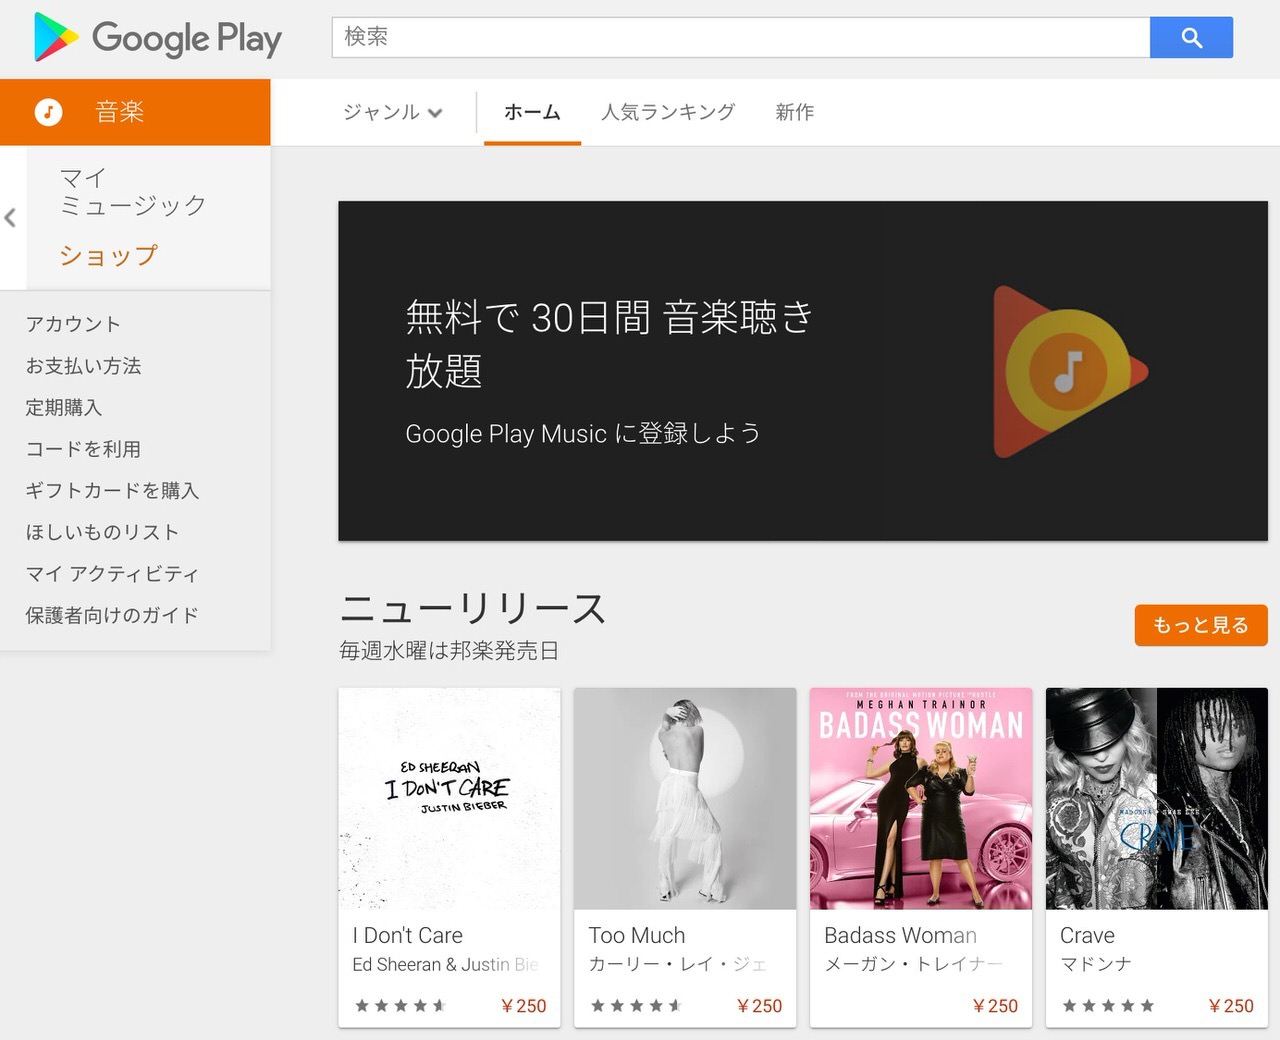 「Google Play Music」と「YouTube Music Premium」の会員数は1,500万人